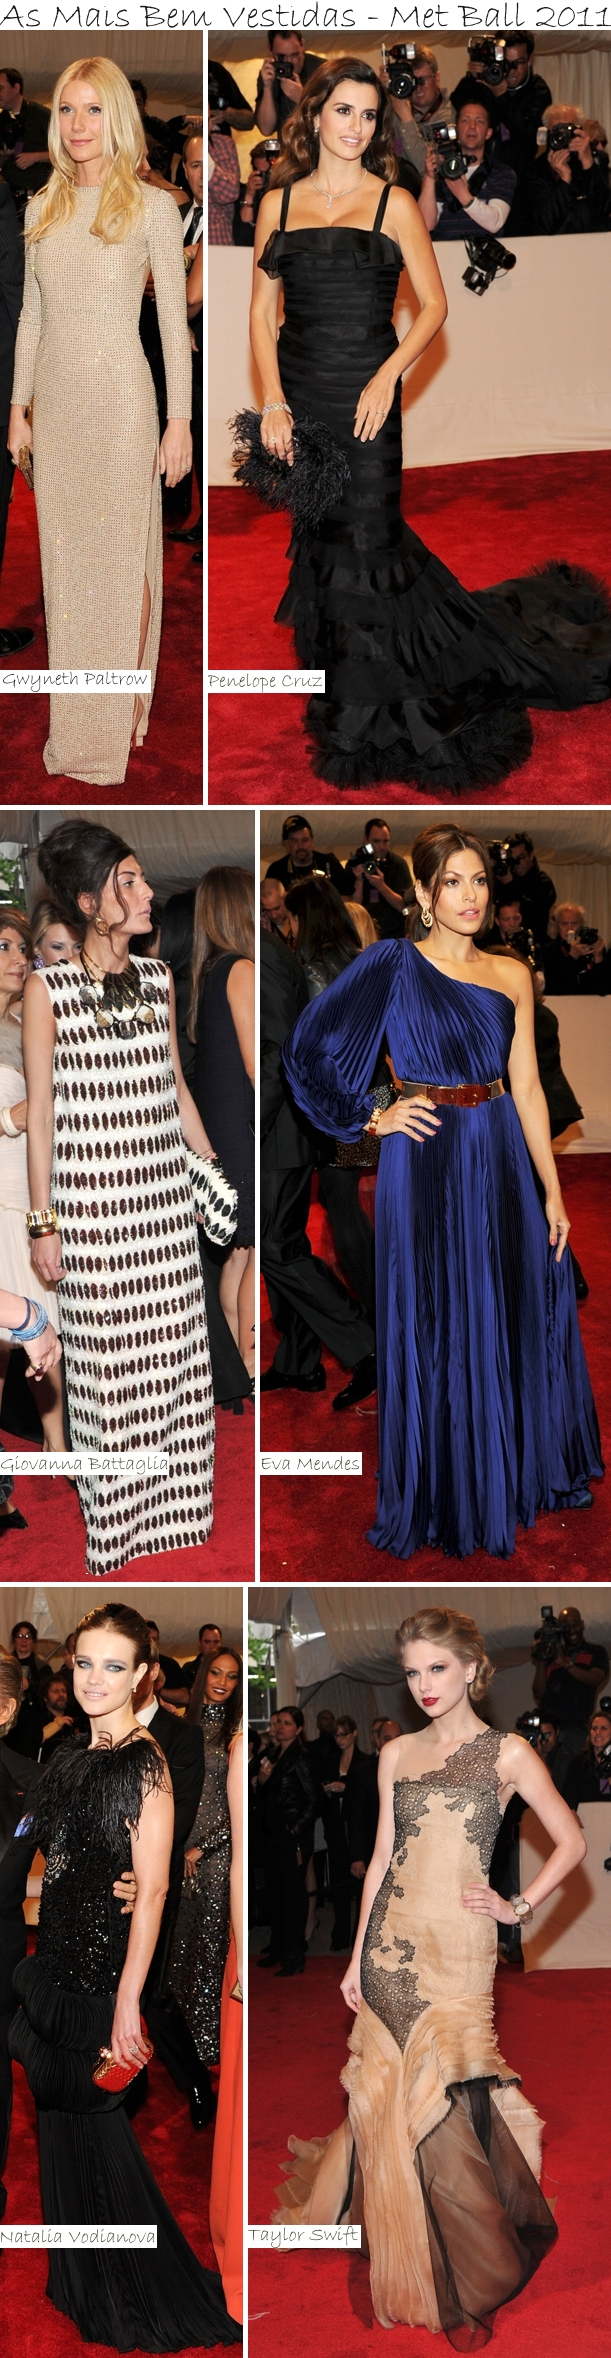 As Mais Bem Vestidas Met Ball 2011 Vote: As Mais Bem Vestidas do Met Ball 2011